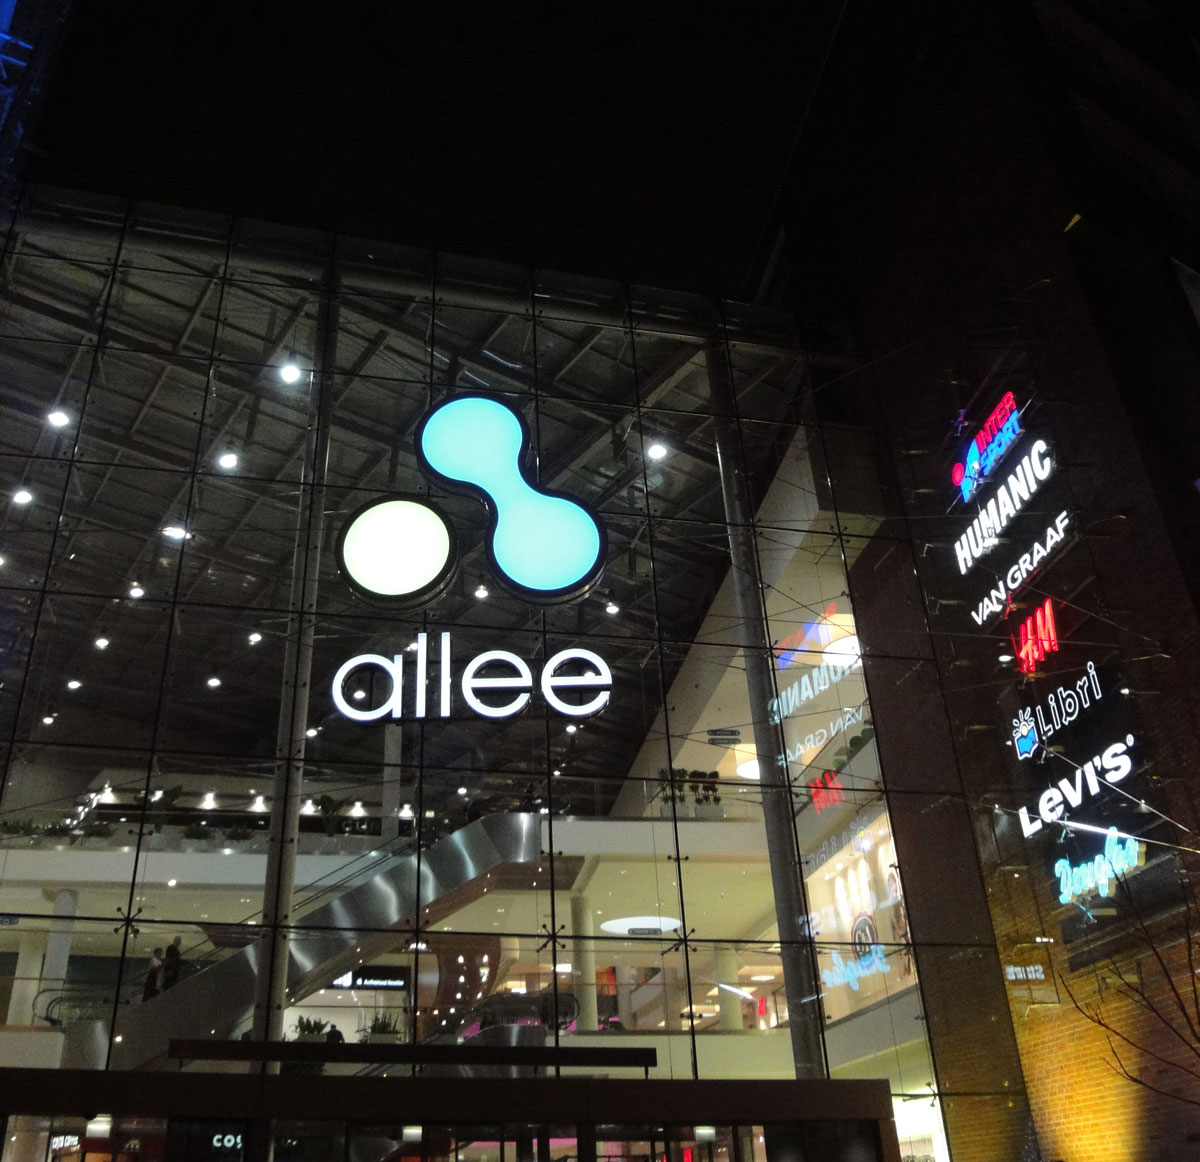 View of Allee from outside at night